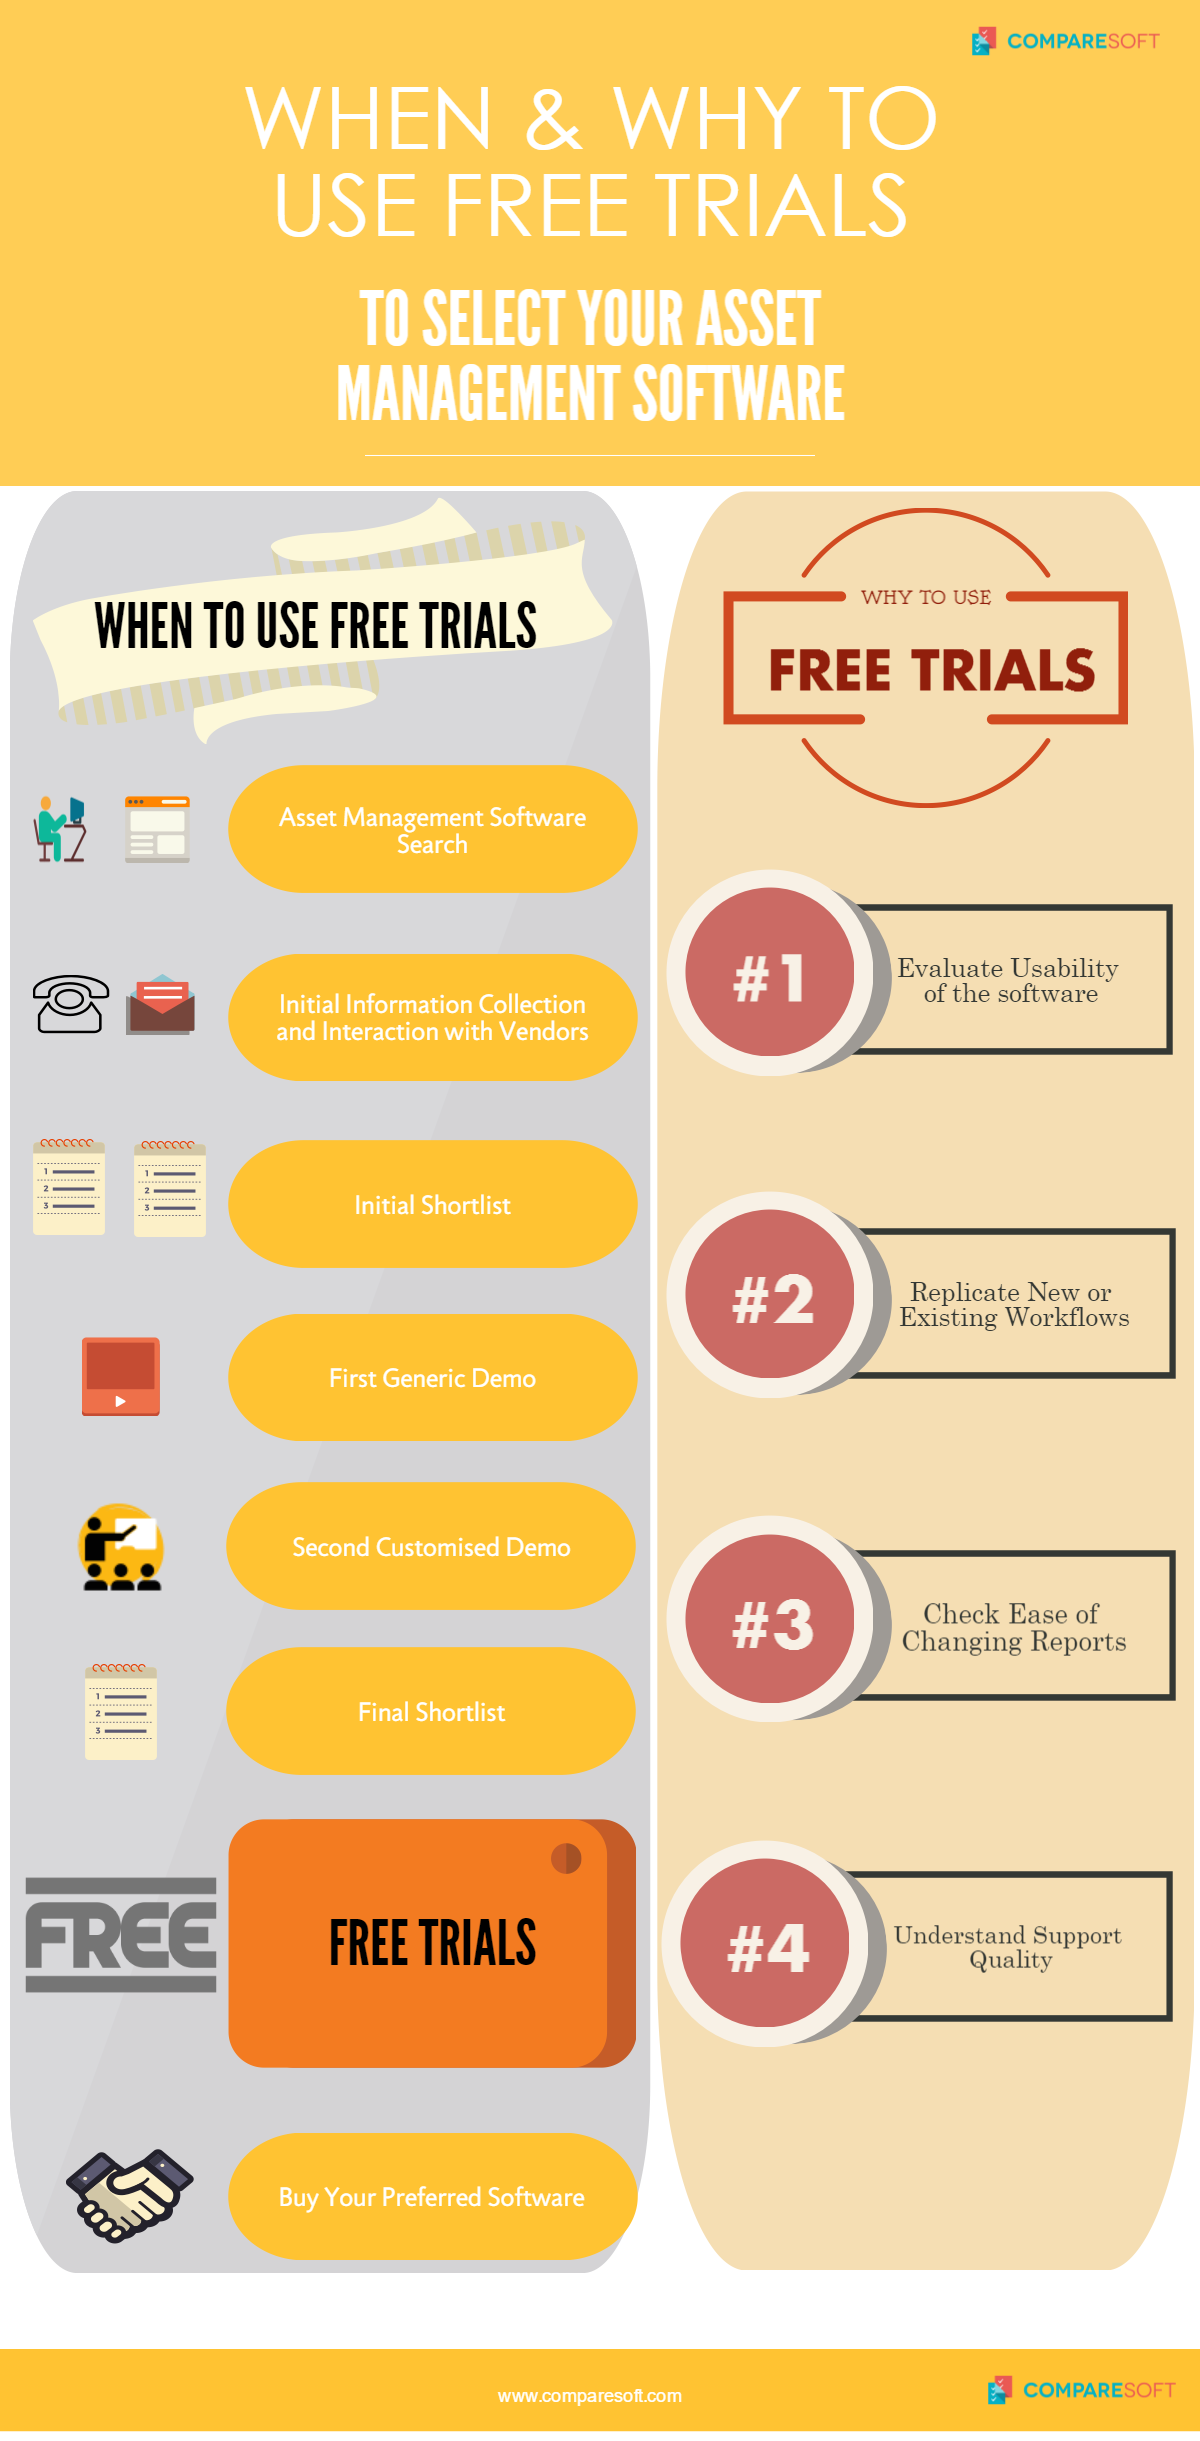 How to use Free Trials to Select your Asset Management Software